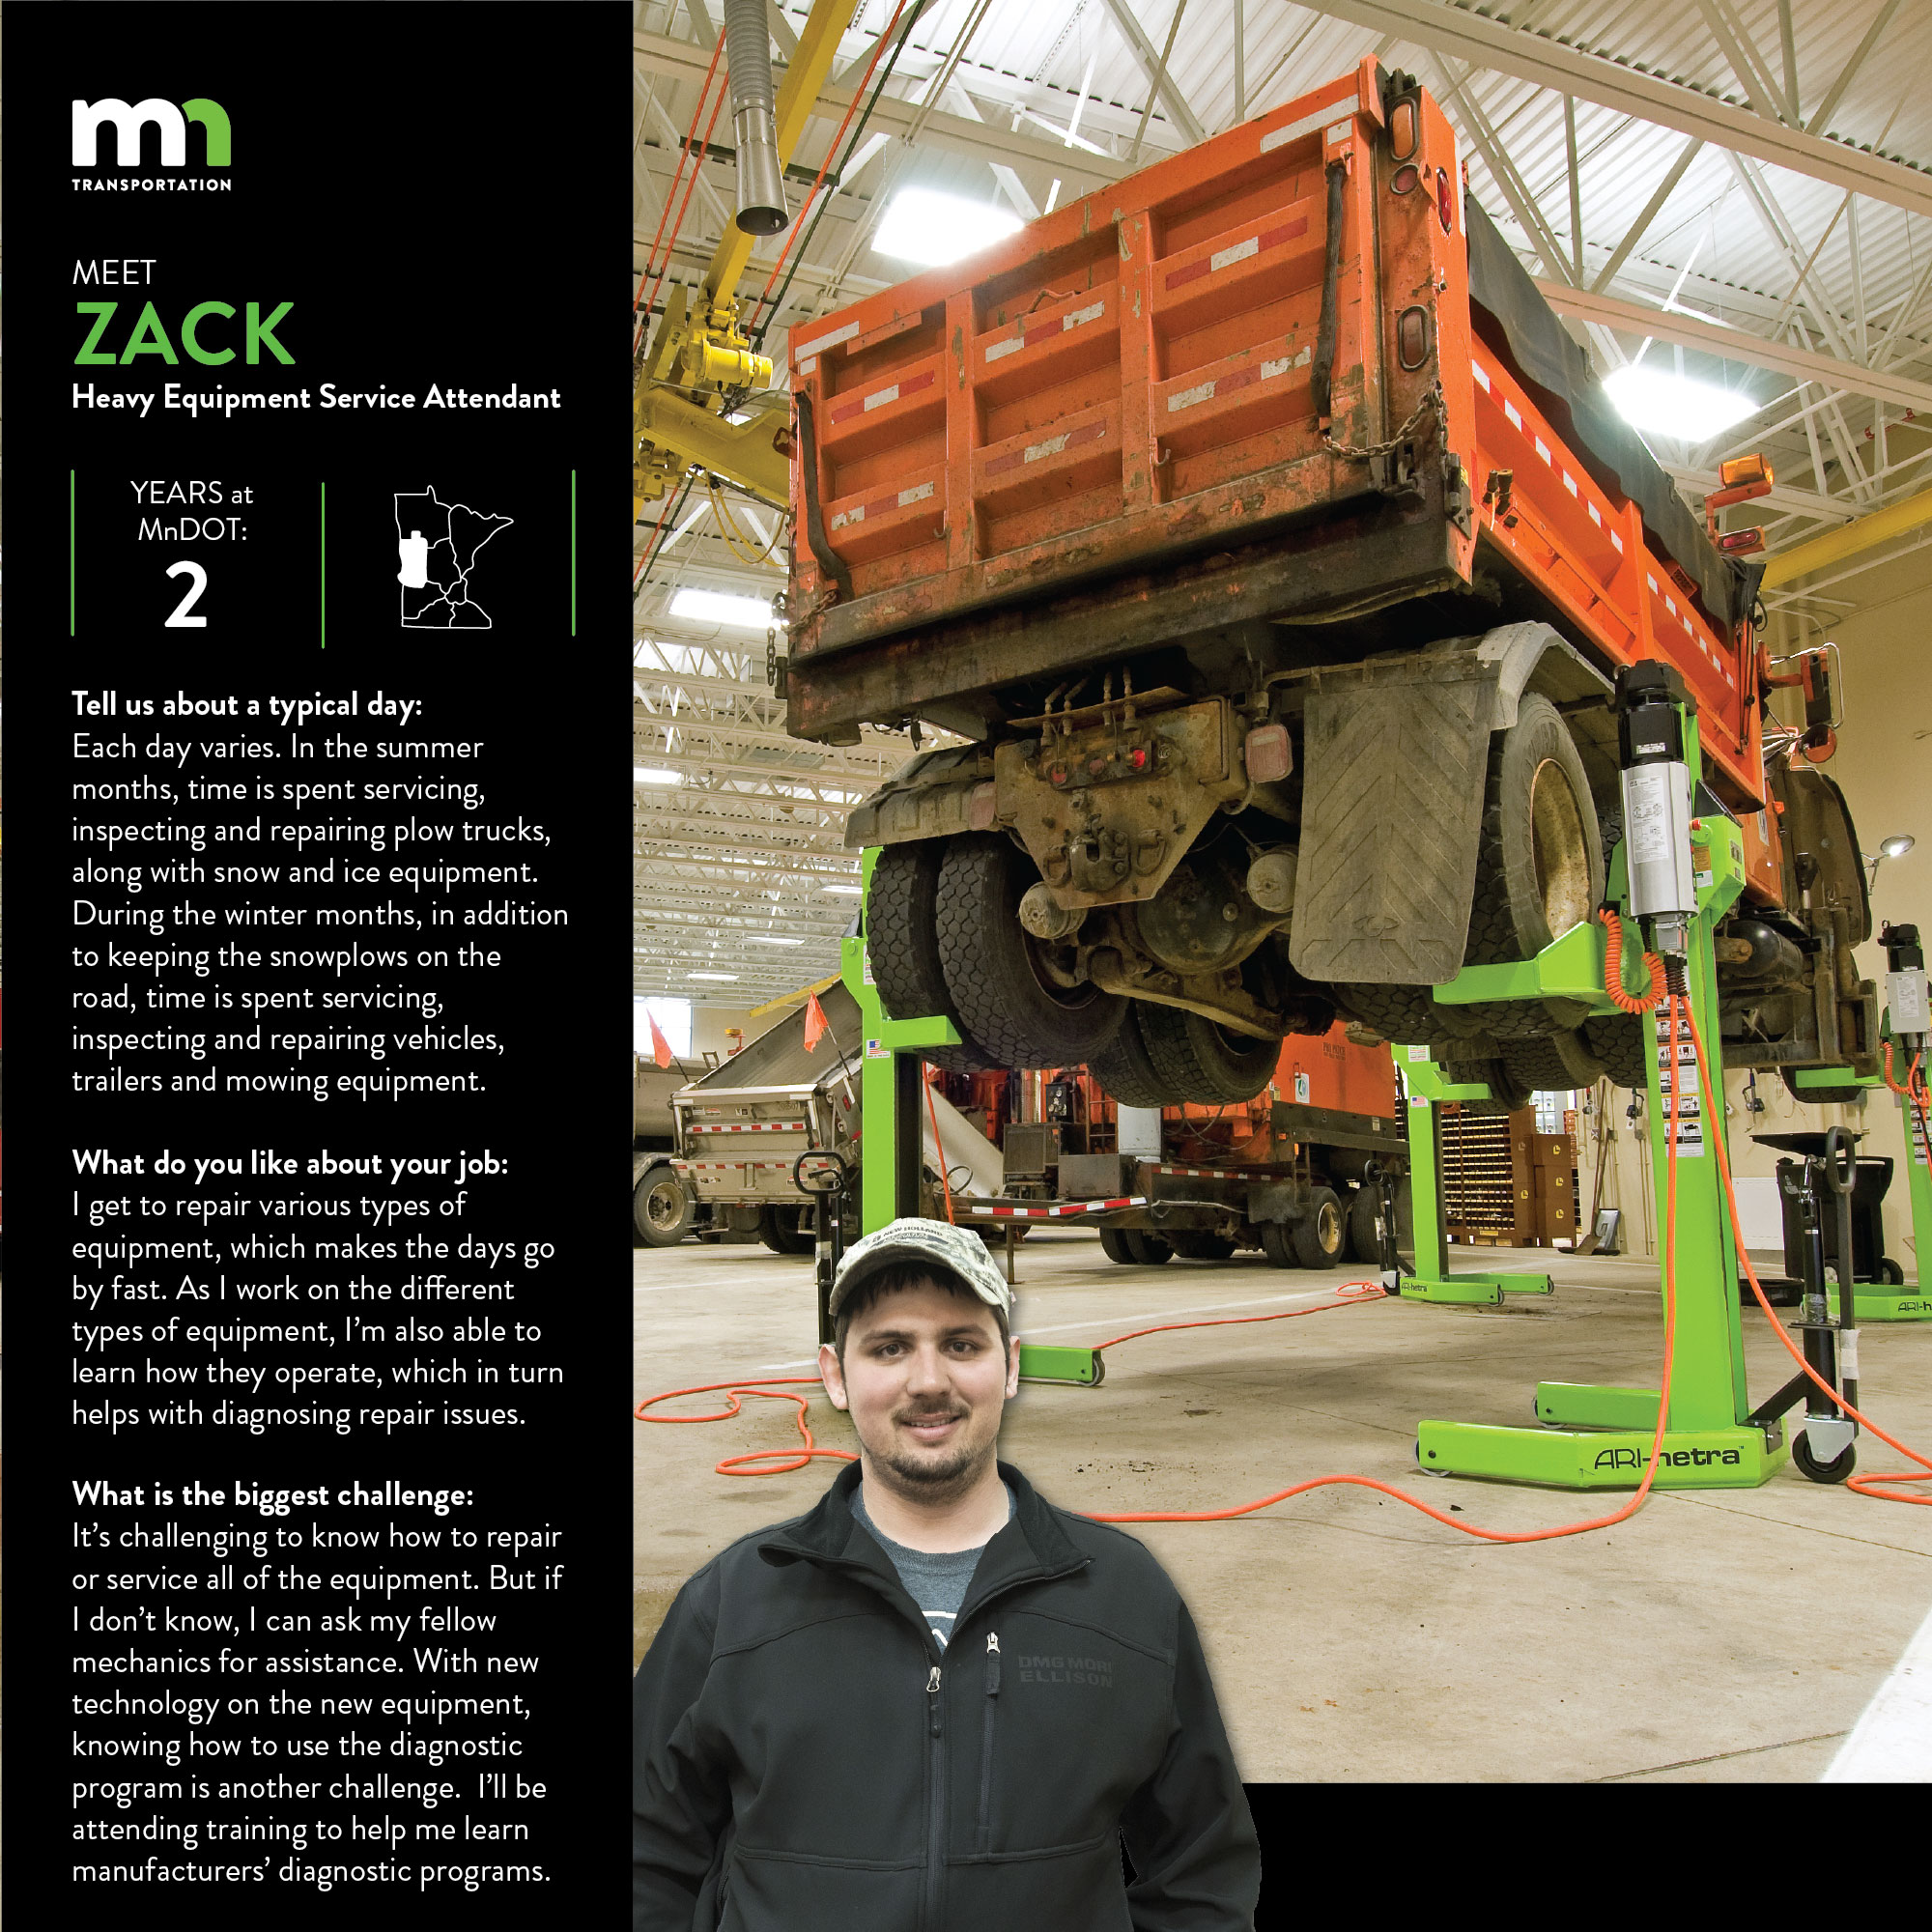 Zack Dahring, a Heavy equipment service attendant at Detroit Lakes Shop in District 4, has worked for MnDOT for two years. He is part of the Grow Our Own program. It is a four-year program to help workers learn the skills needed to meet the qualifications for the heavy equipment mechanic position. It's funded through the central road equipment budget, and you must have mechanical experience. Candidates are hired as heavy equipment service attendants, work with existing shop mechanics and attend trainings. He says It's challenging to know how to repair or service all of the equipment. But if I don't know how, I can ask my fellow mechanics for assistance. With new technology on the new equipment, knowing how to use the diagnostic program is another challenge.  I'll be attending training to help me learn manufacturer's diagnostic programs.